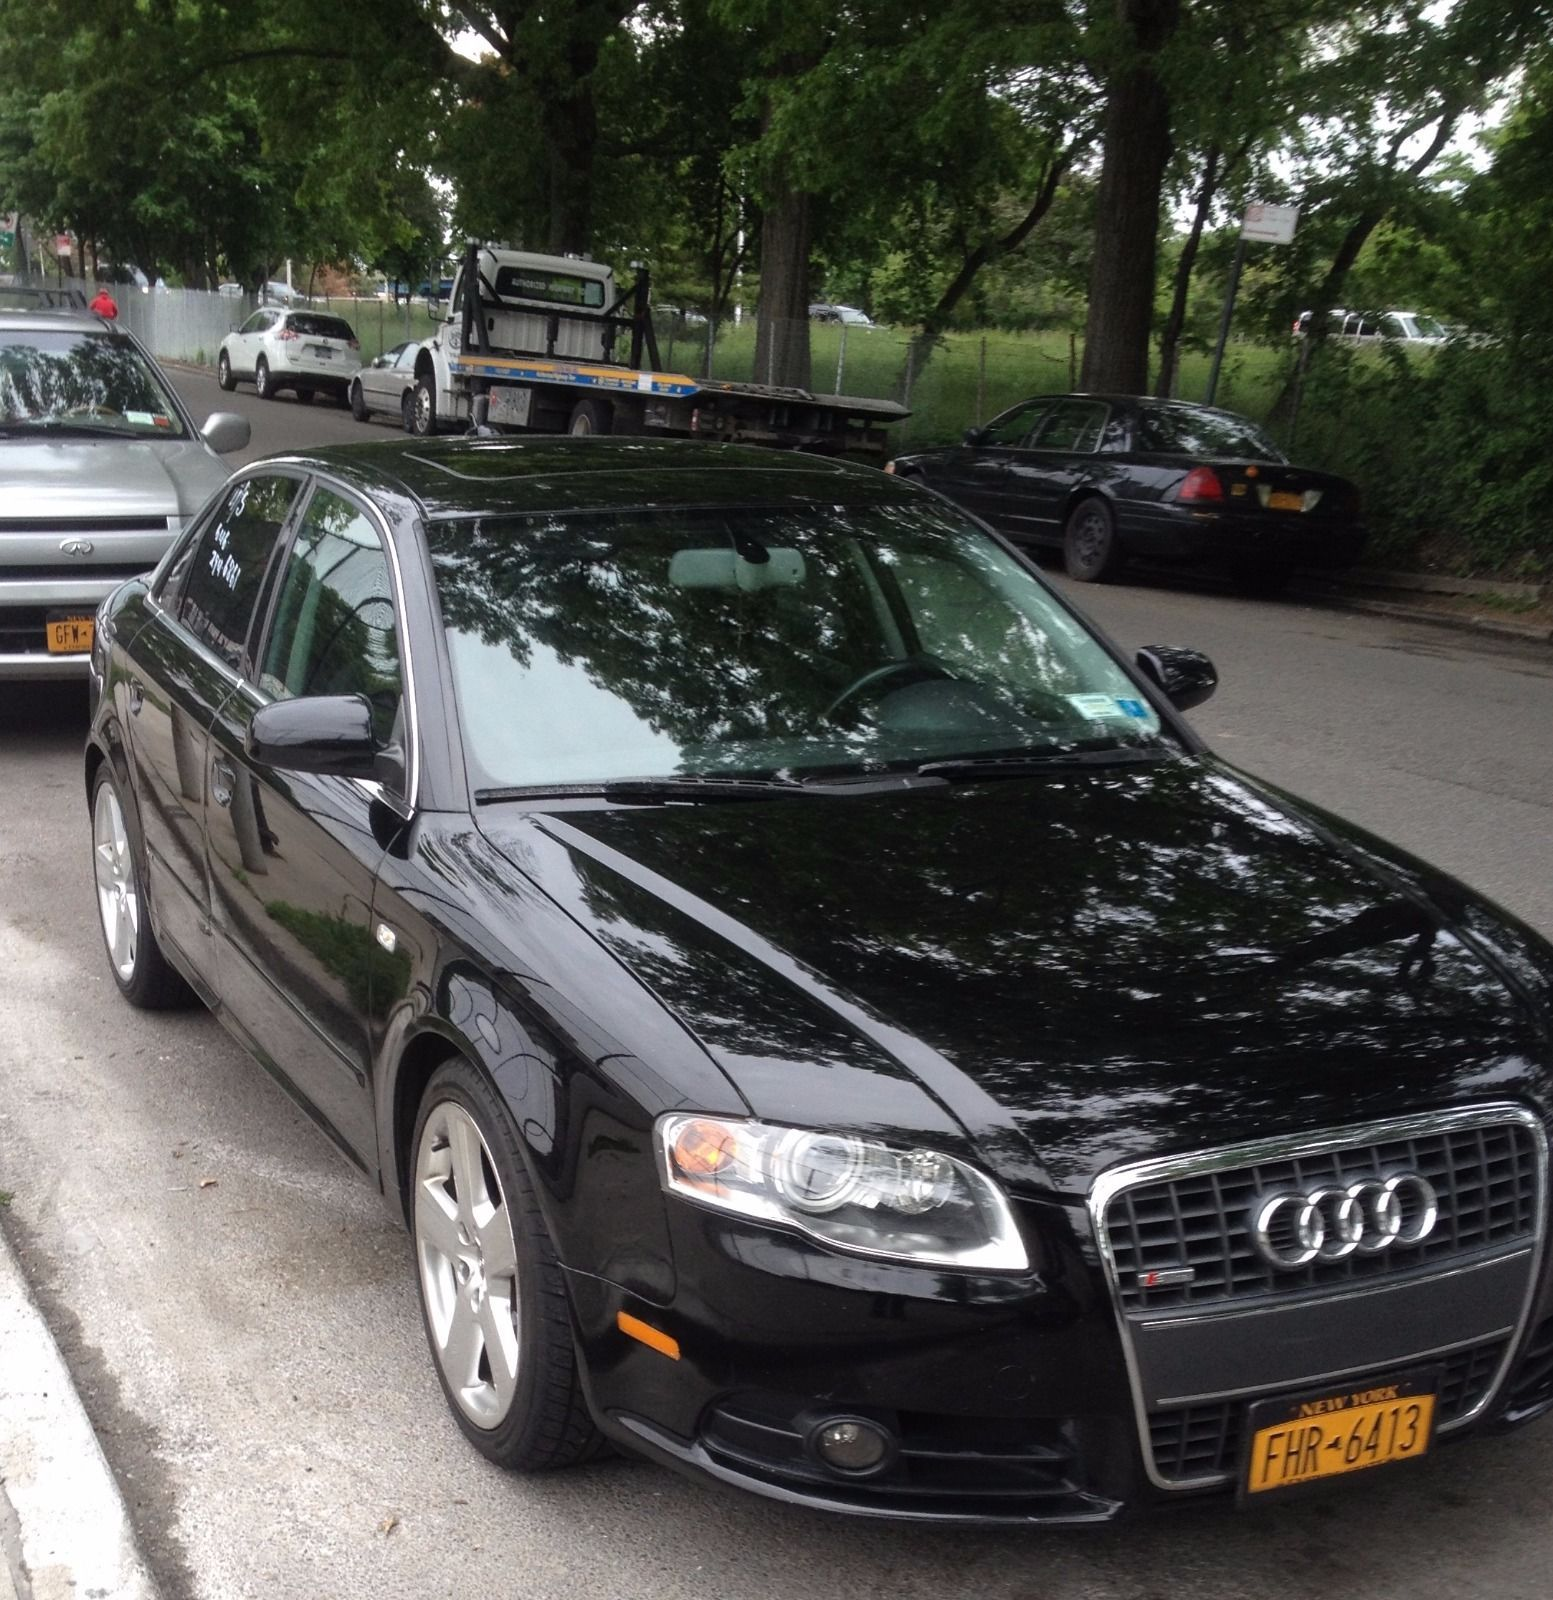 Car Brand Auctioned:Audi A4 Car Model Audi A4 S Line